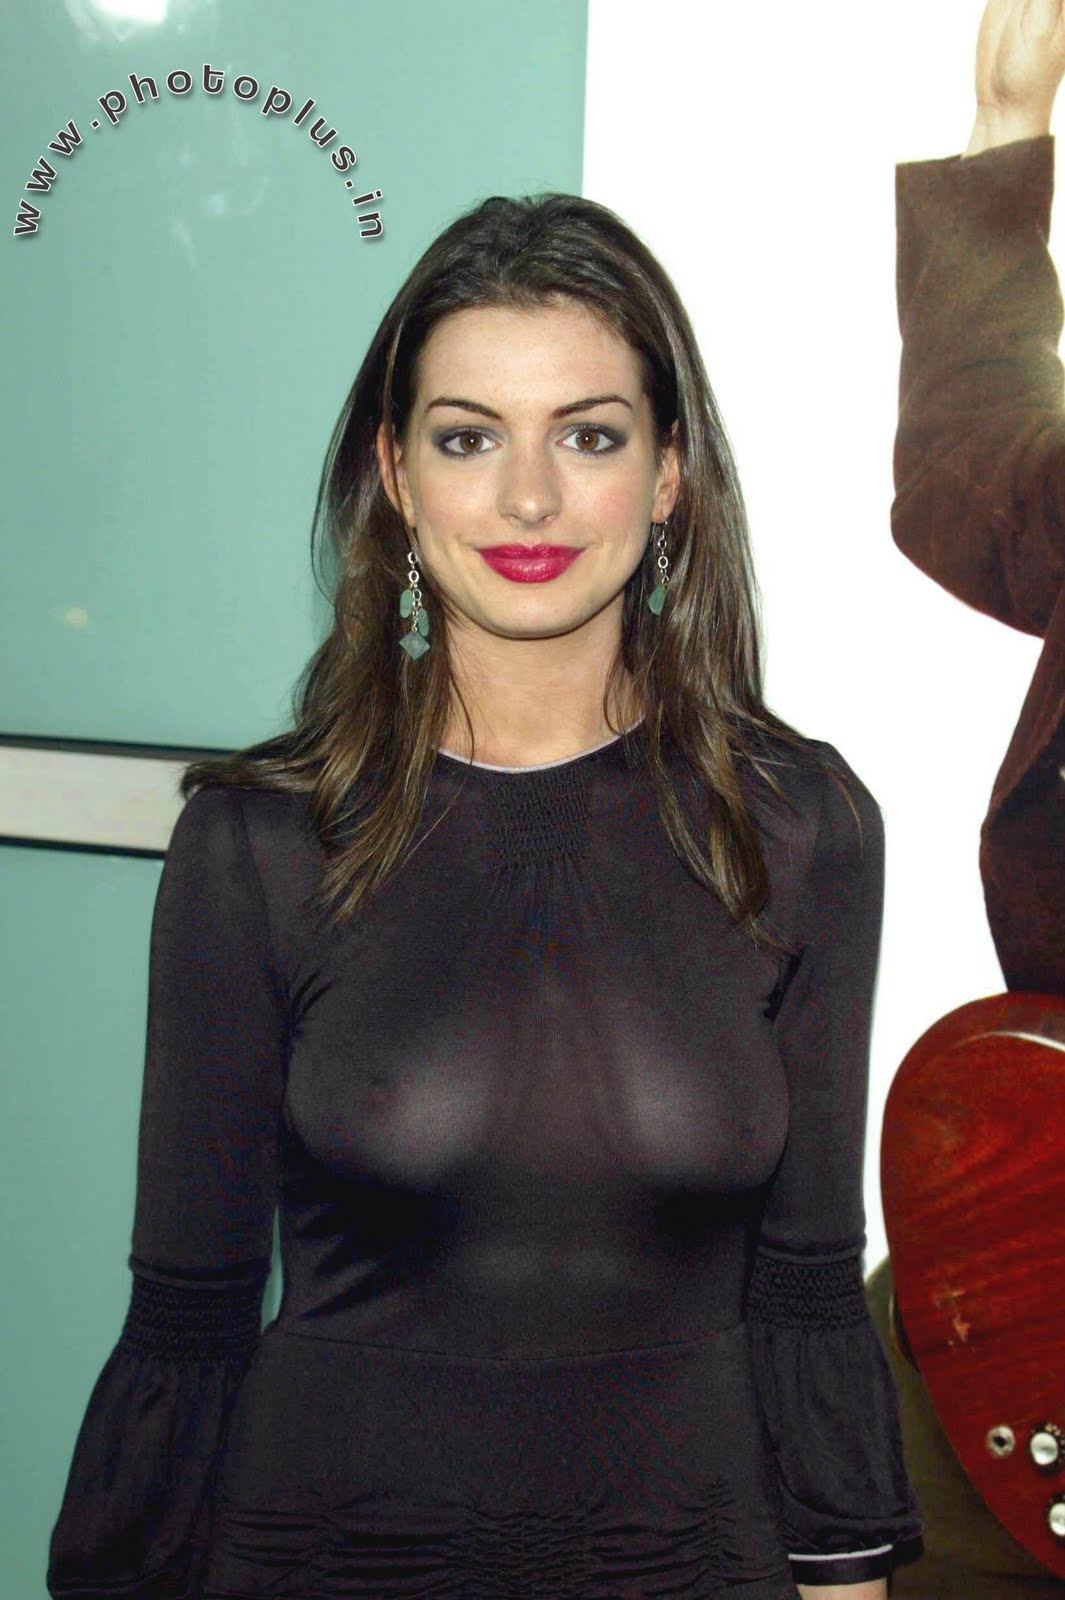 Anne Hathaway wants others to stare at her